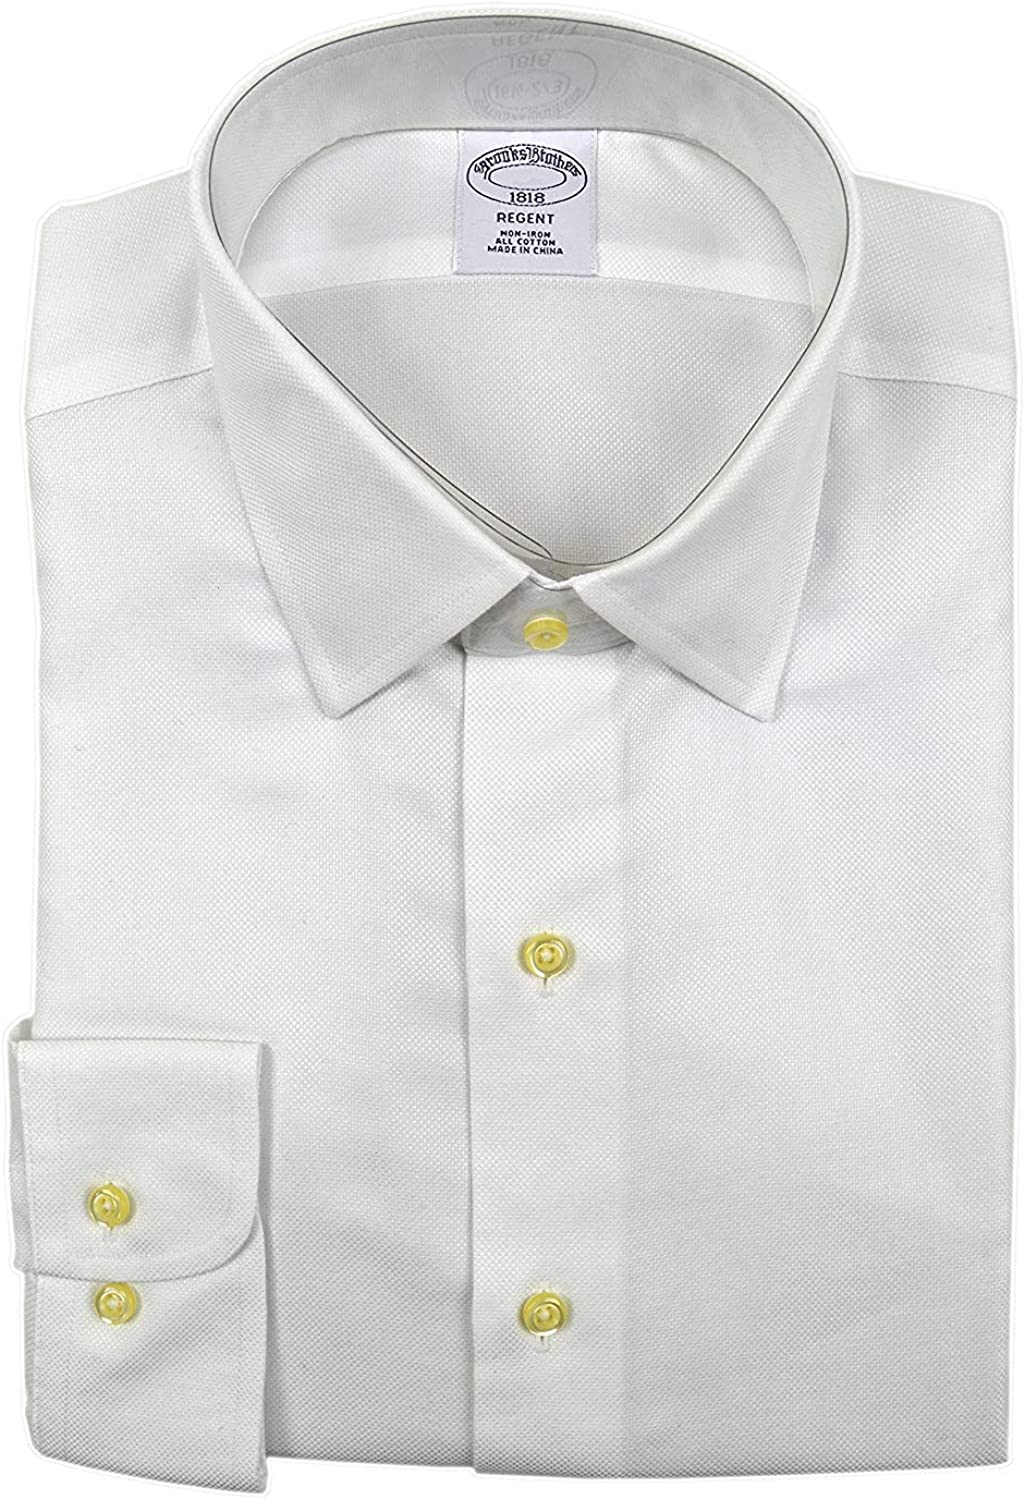 Brooks Brothers Classic Fit 17-37 Non Iron Supima Cotton Solid White Dress Shirt